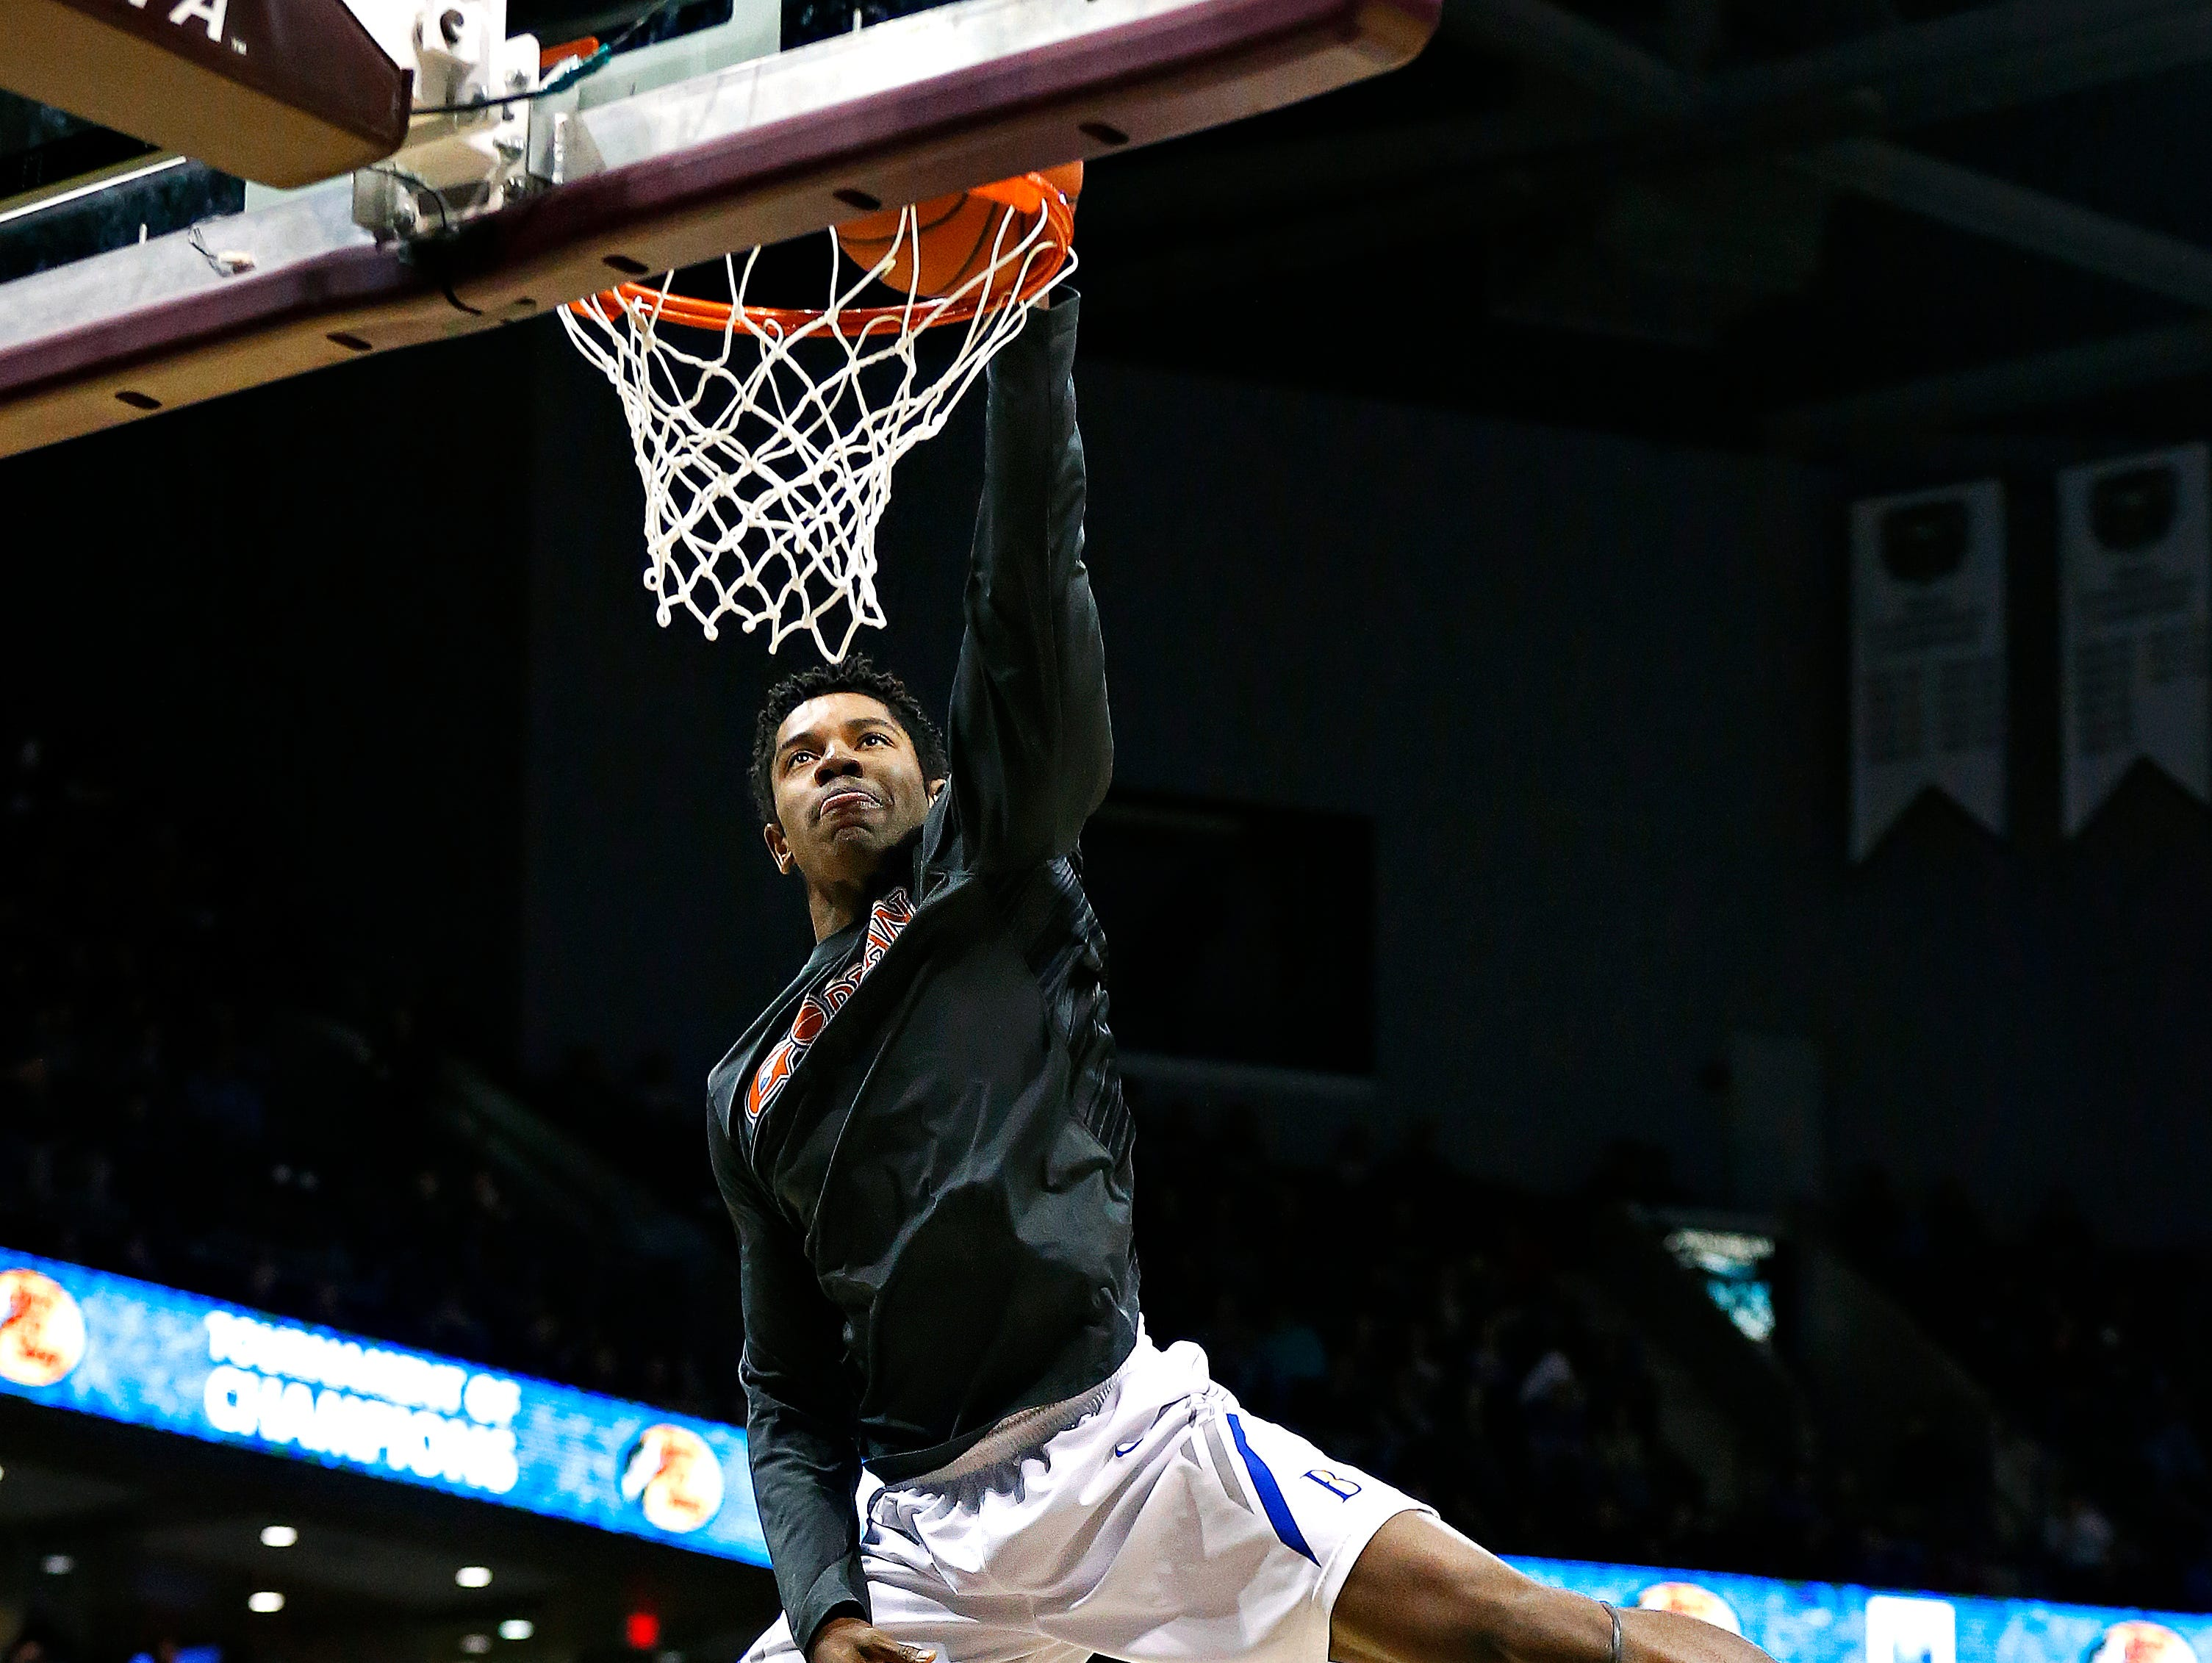 Bishop Gorman High School (Las Vegas, Nev.) guard Christian Popoola Jr. (22) slam dunks during the dunk contest portion of the 2016 Tournament of Champions at JQH Arena in Springfield, Mo. on Jan. 15, 2015. Popoola Jr. won first place in the contest.